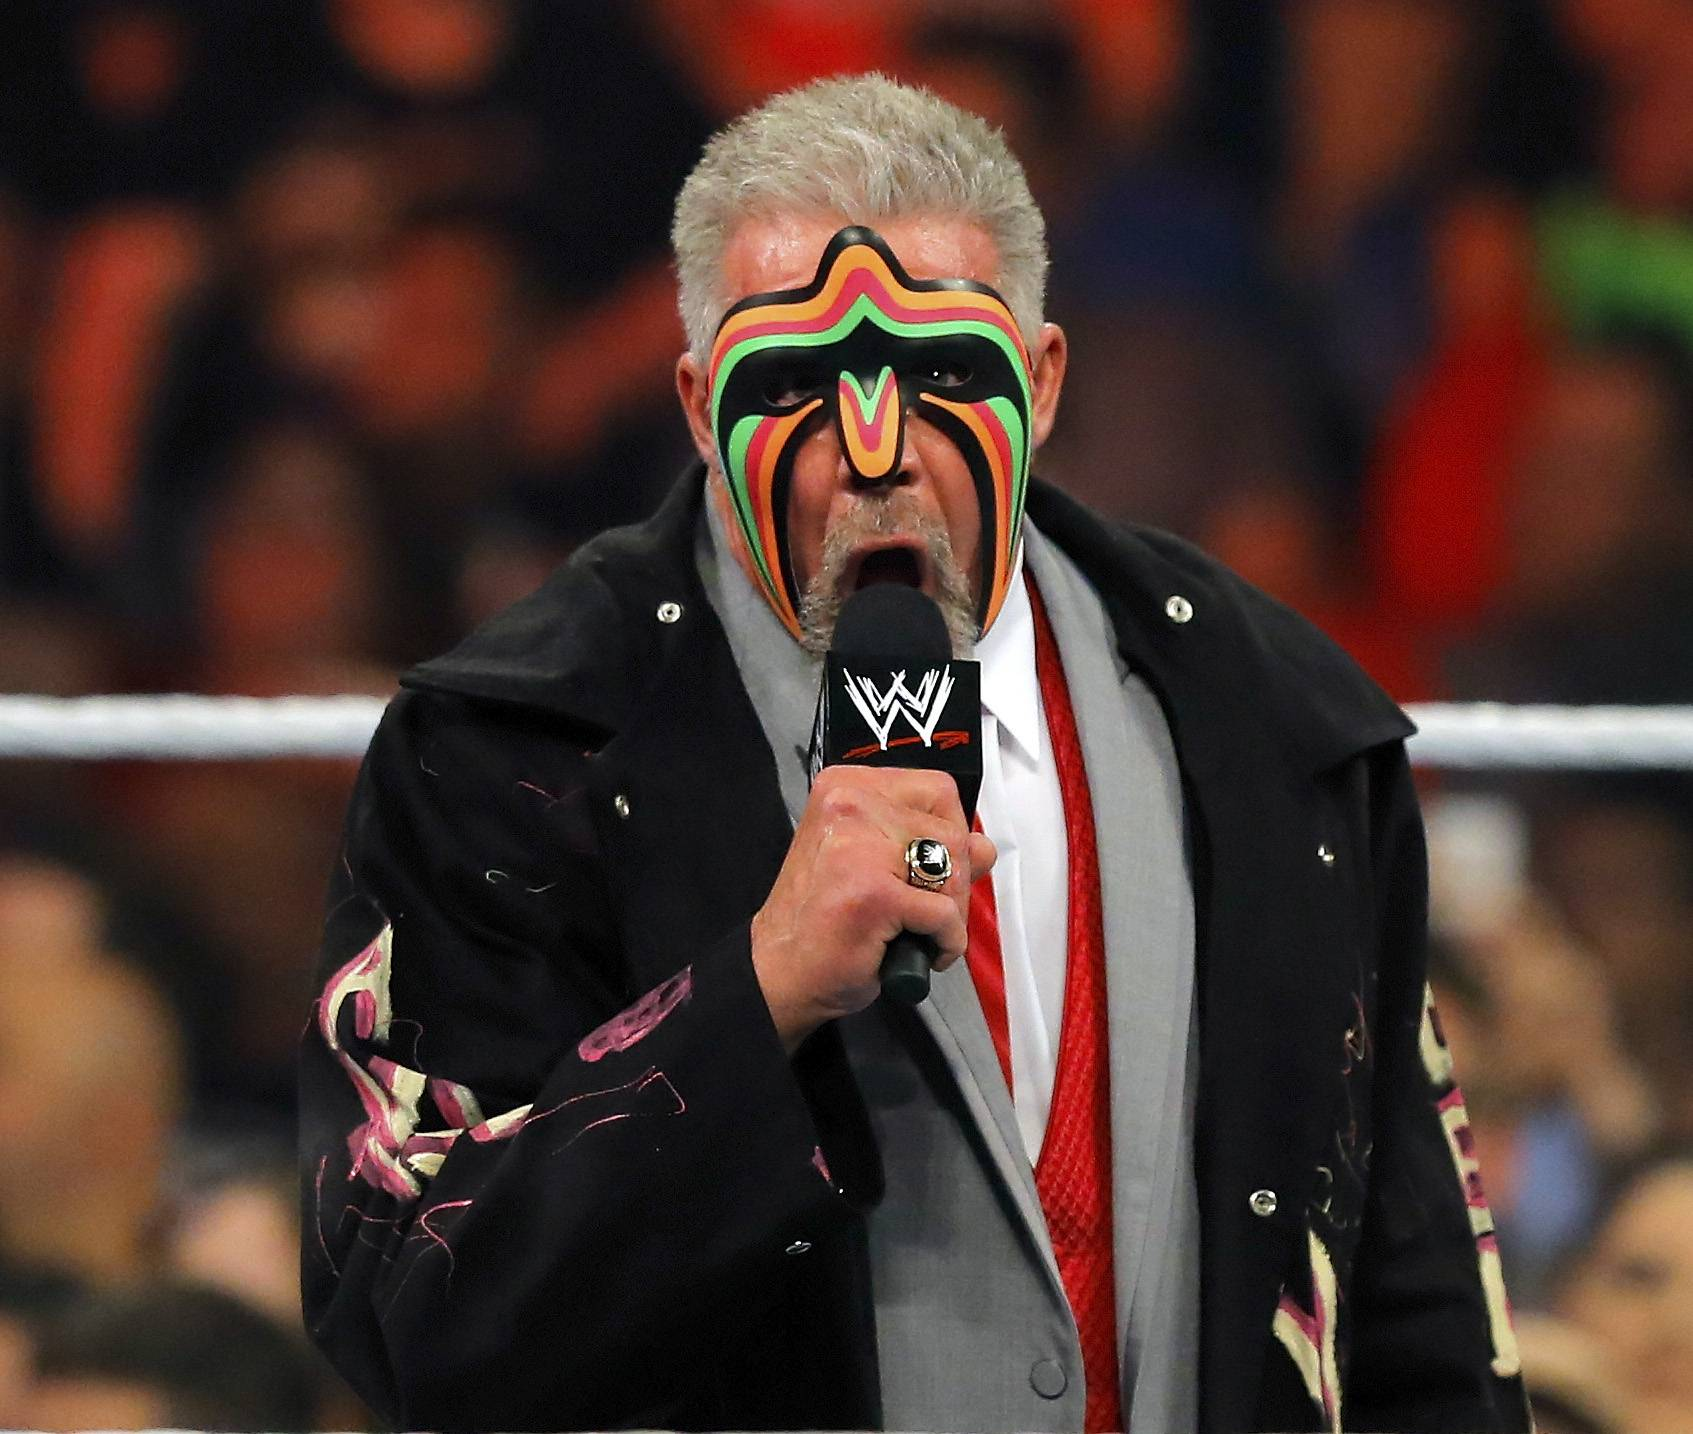 James Hellwig, better known as The Ultimate Warrior, died Tuesday, April 8, 2014. He was 54. Hellwig was one of pro wrestling's biggest stars in the late 1980s.